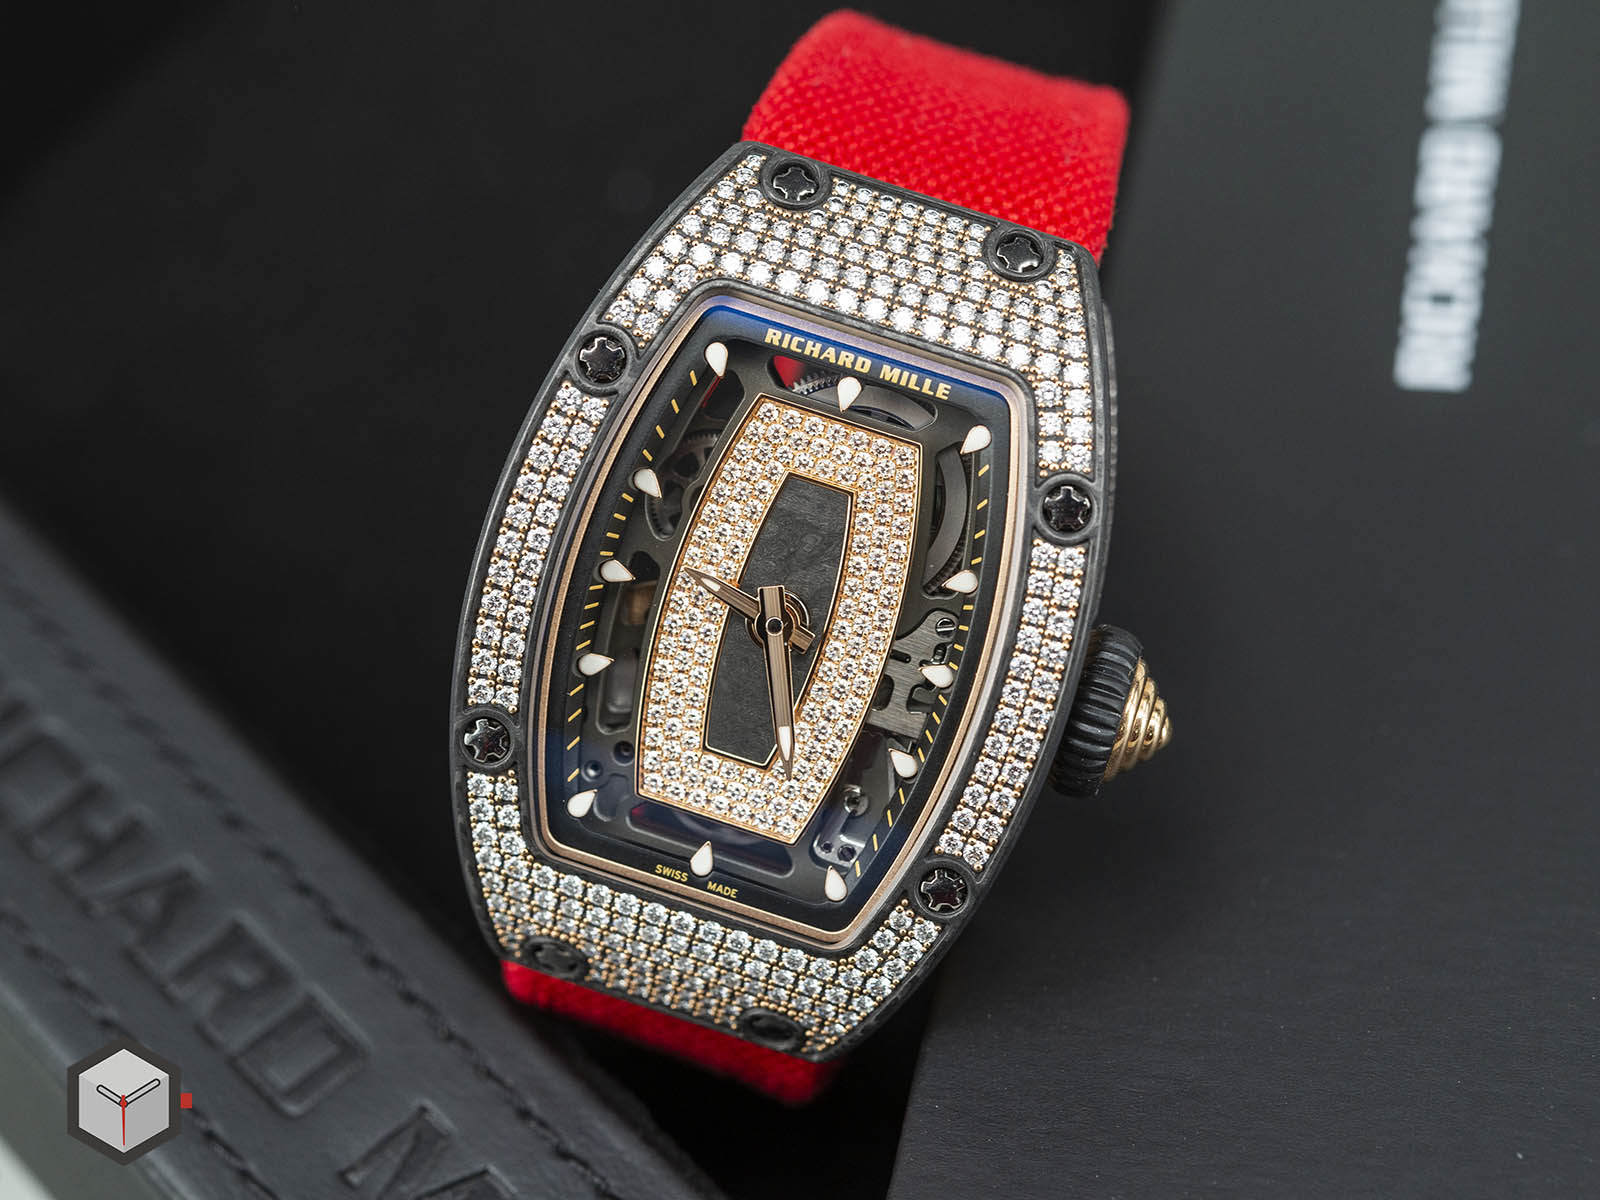 richard-mille-rm-07-01-automatic-5.jpg